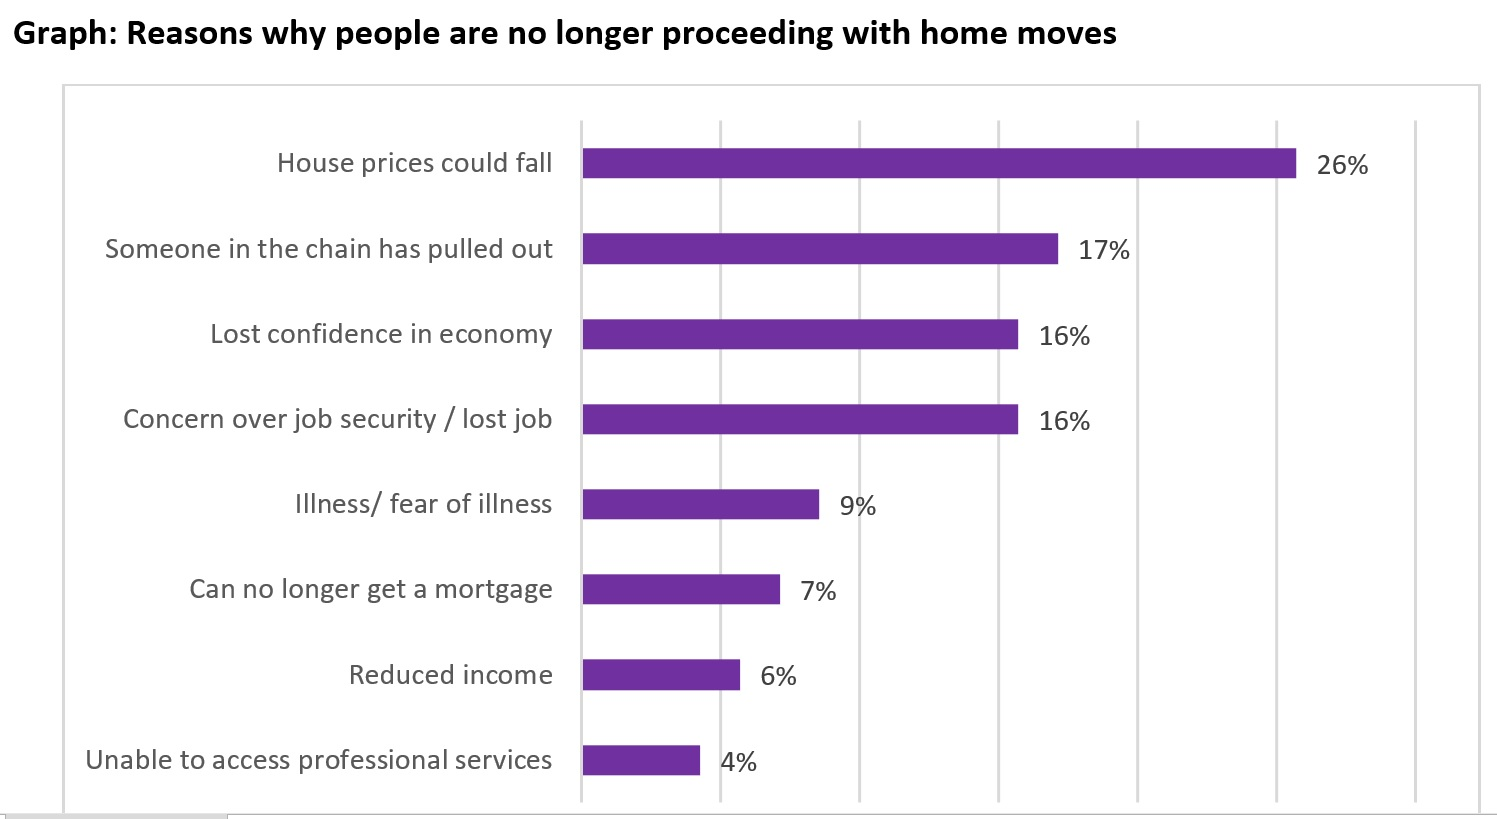 reallymoving---reasons-why-people-are-no-longer-proceeding-with-home-moves